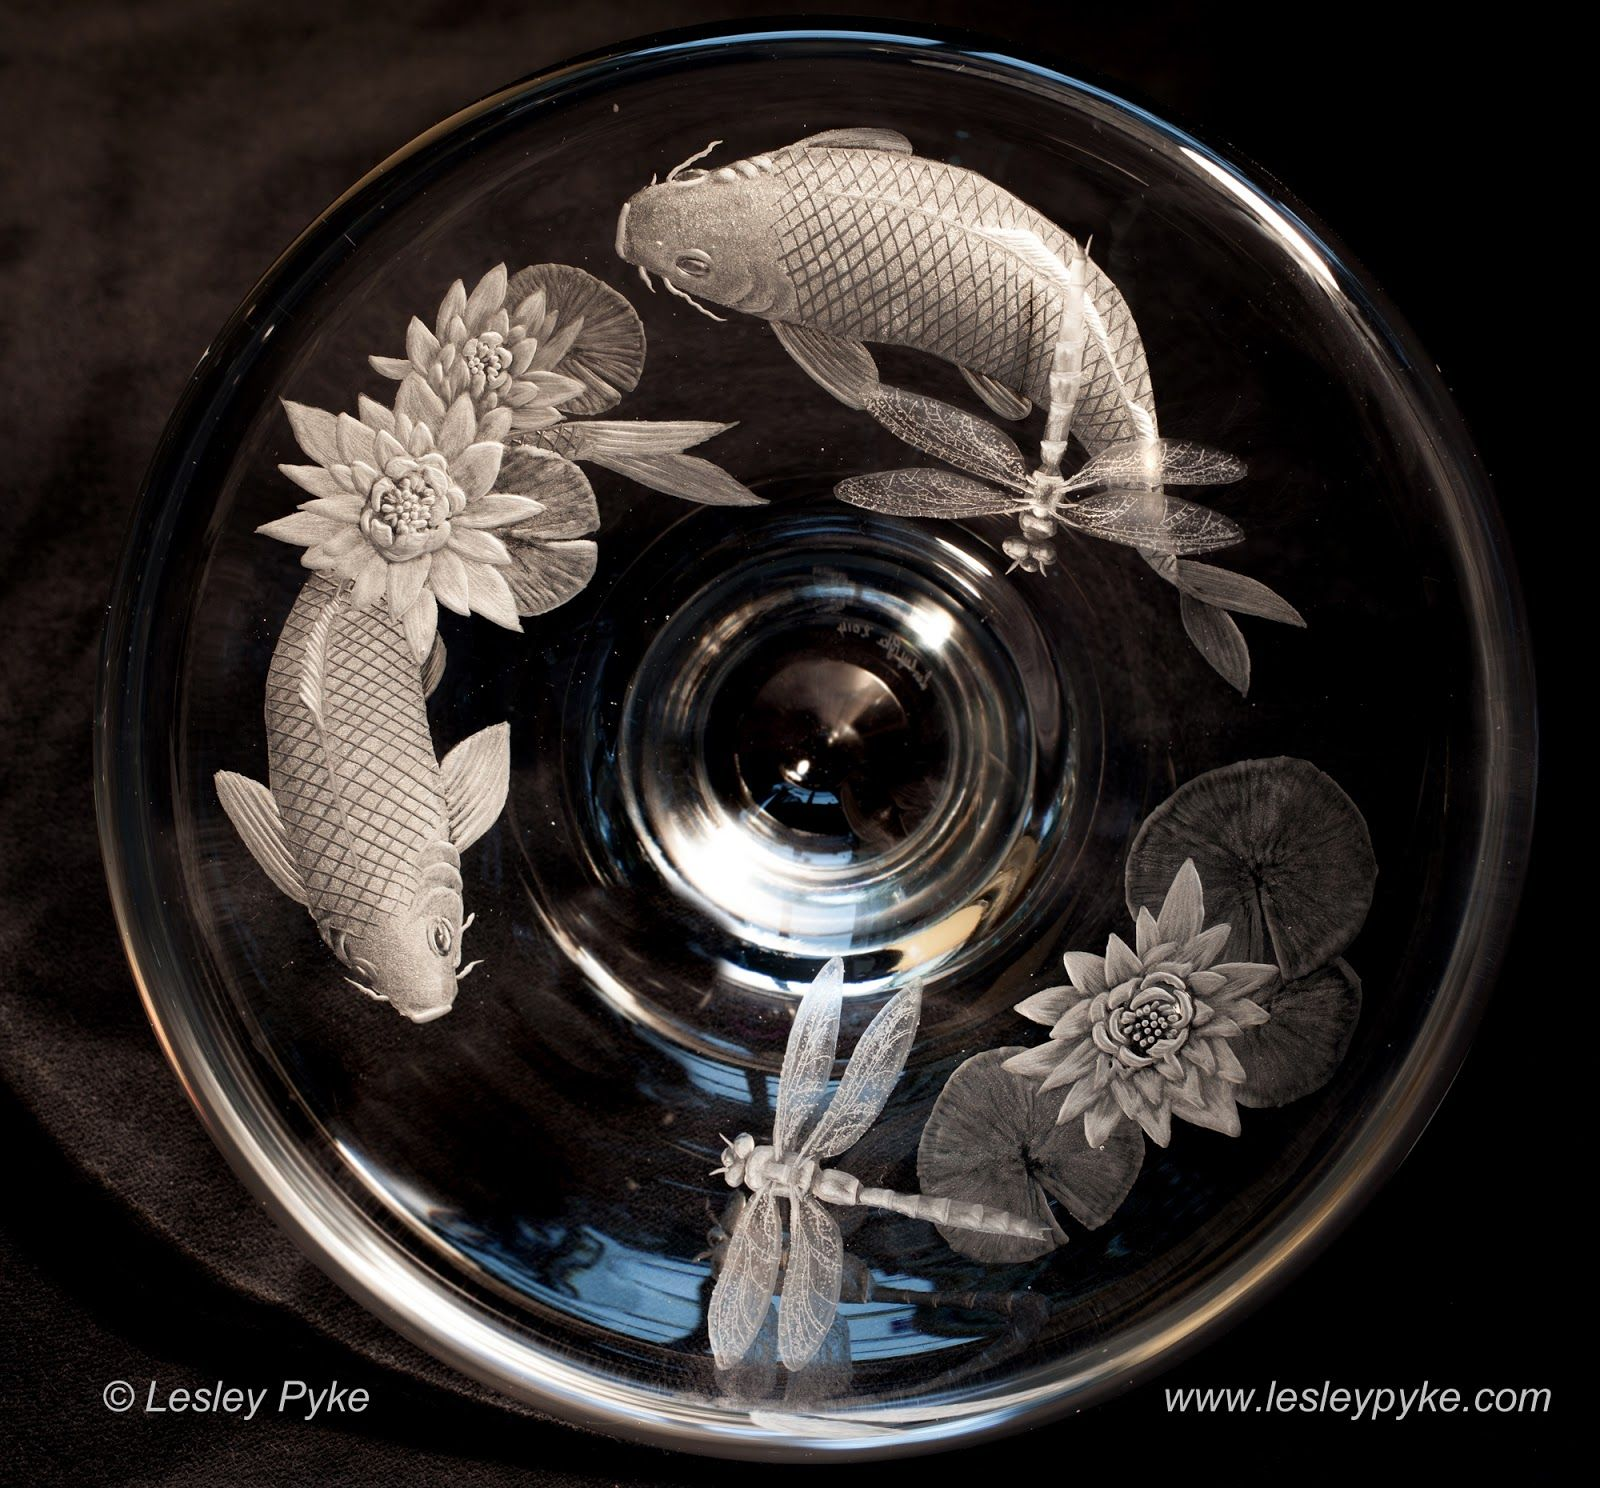 Engraved glass ornaments - Lesley Pyke Glass Engraving And Life A Bit Of Everything As Usual Classical